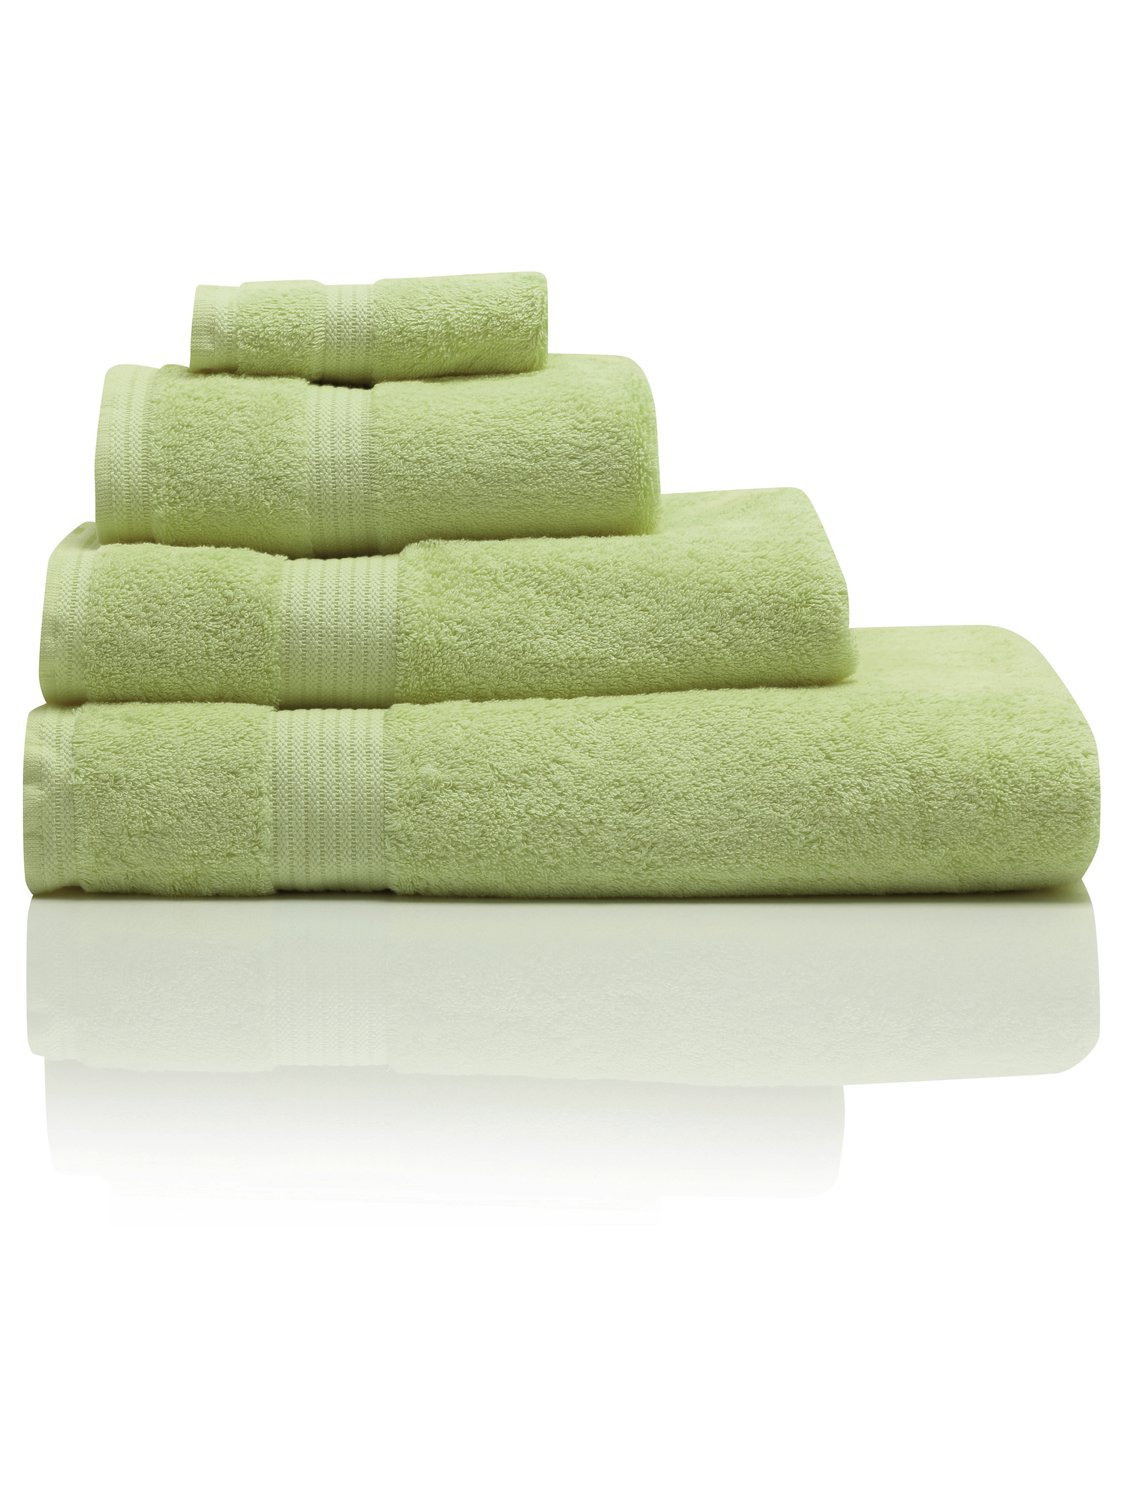 100% Combed Cotton 580Gsm Soft And Absorbent Bathroom Facecloth - Apple Green